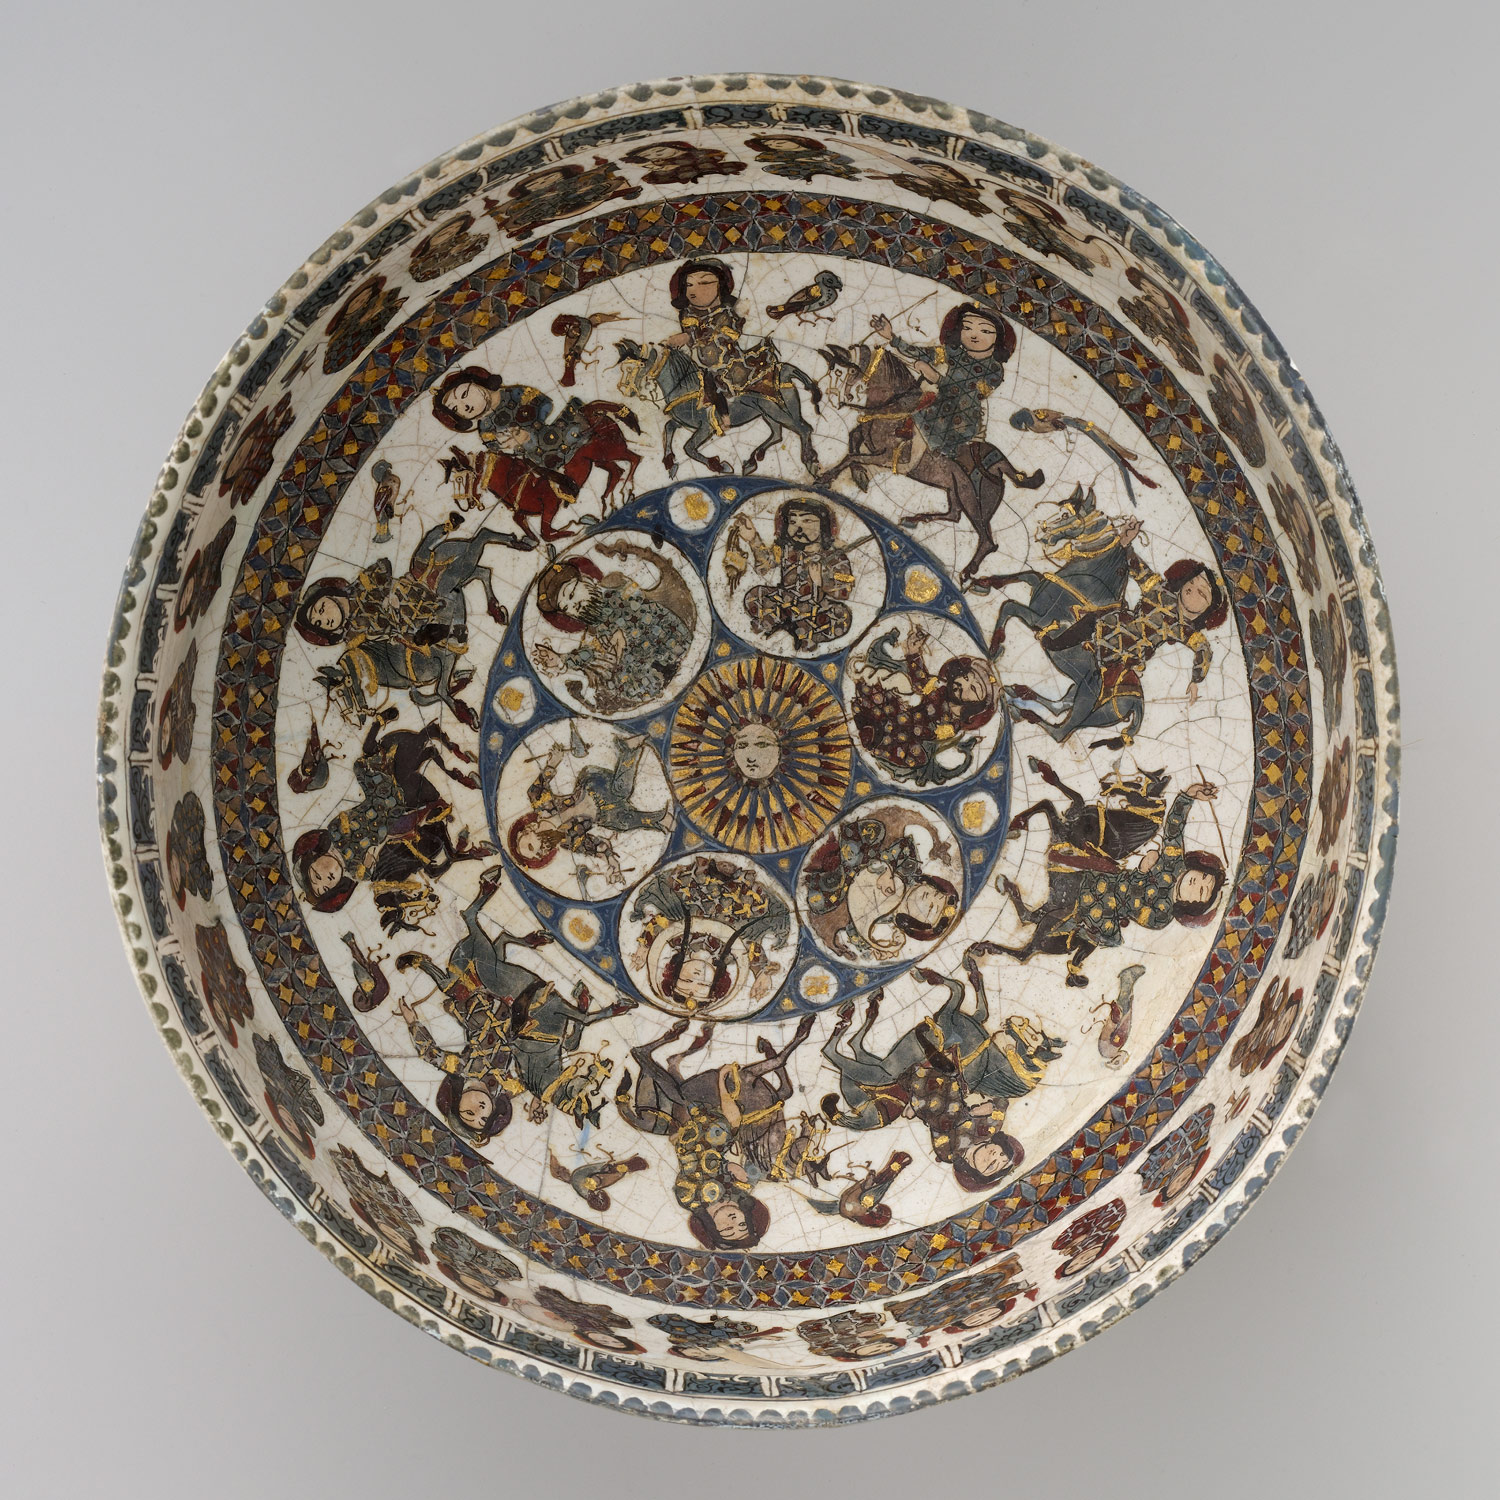 Bowl with Courtly and Astrological Motifs